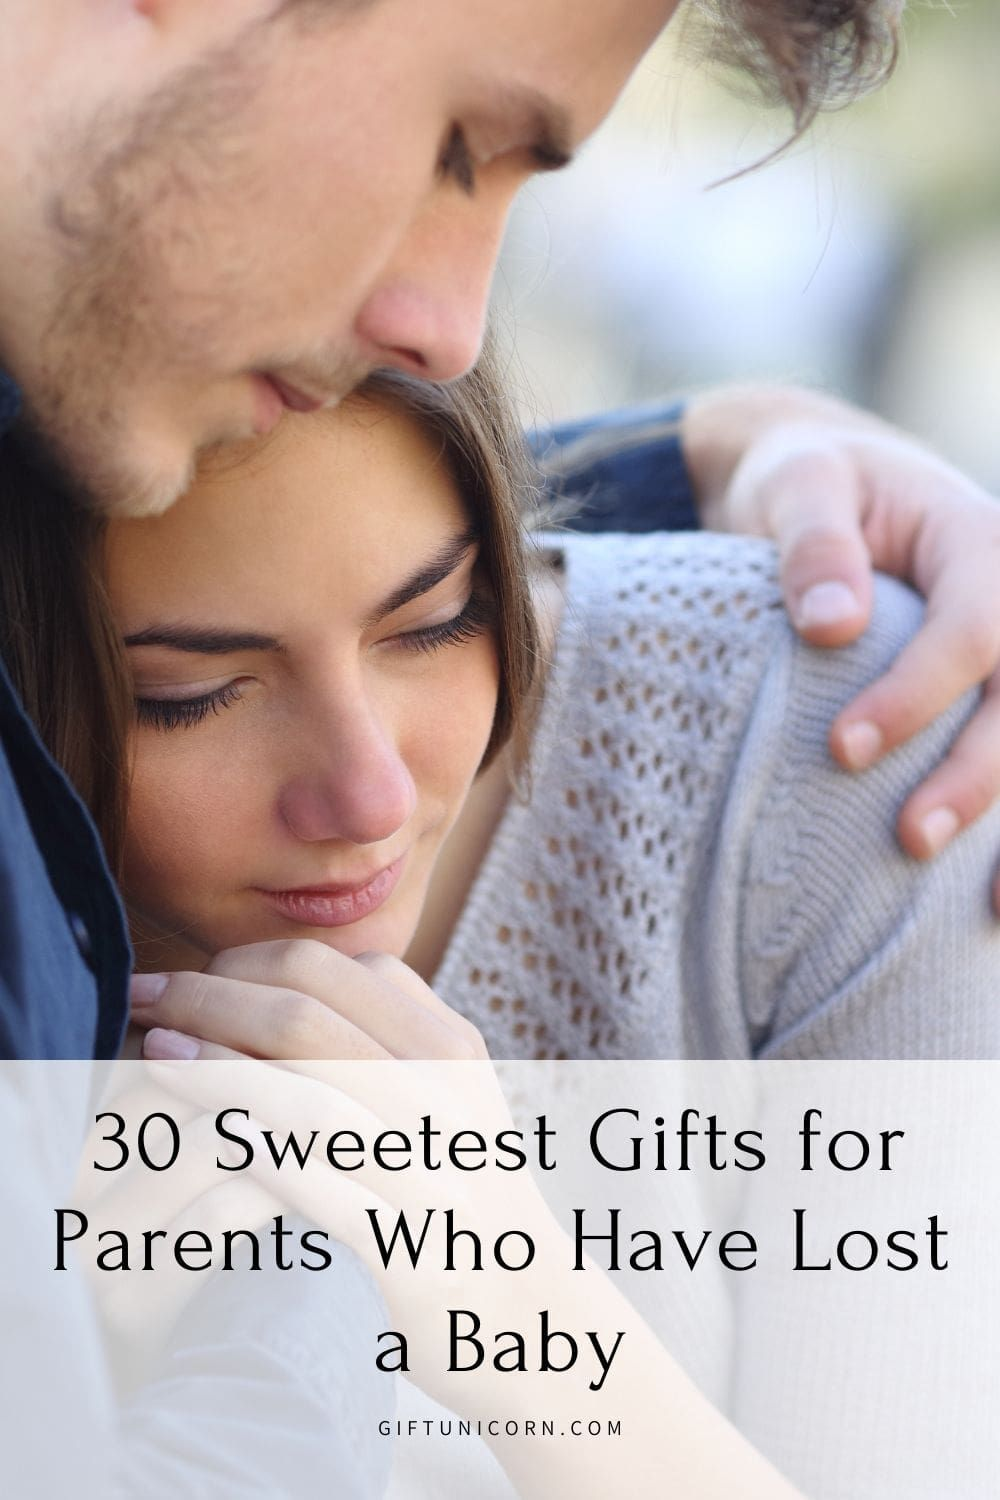 Gifts For Parents Who Have Lost A Baby : gifts, parents, Sweetest, Gifts, Parents, GiftUnicorn, Losing, Baby,, Parent, Gifts,, Child